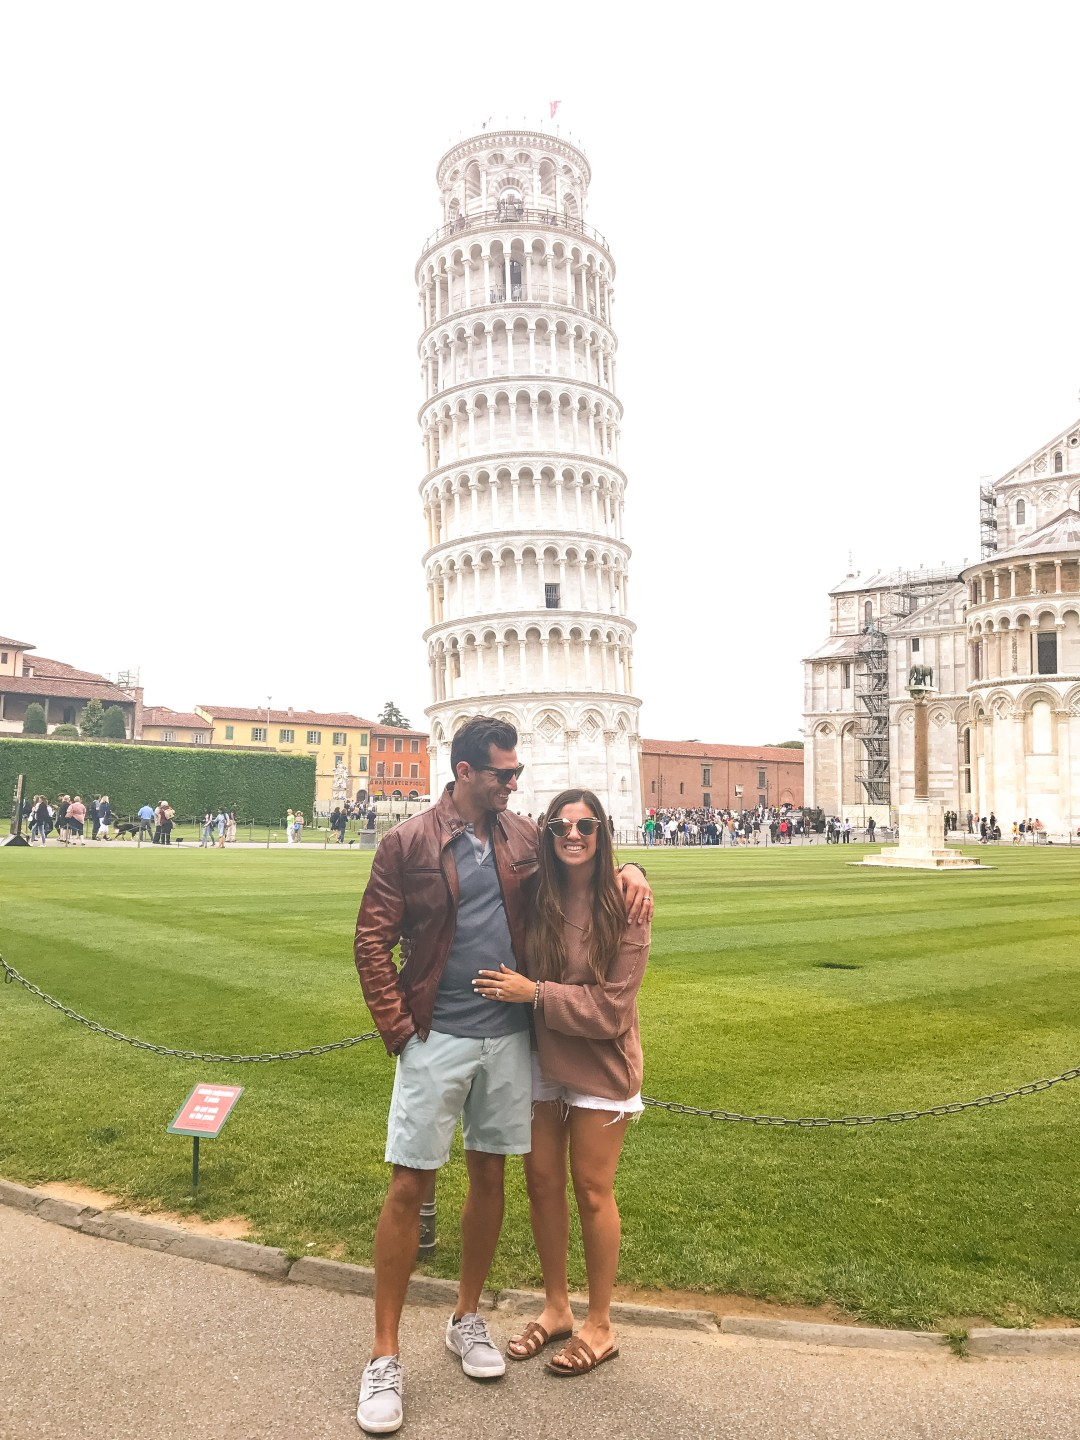 Leaning Tower of Pisa, Italy review